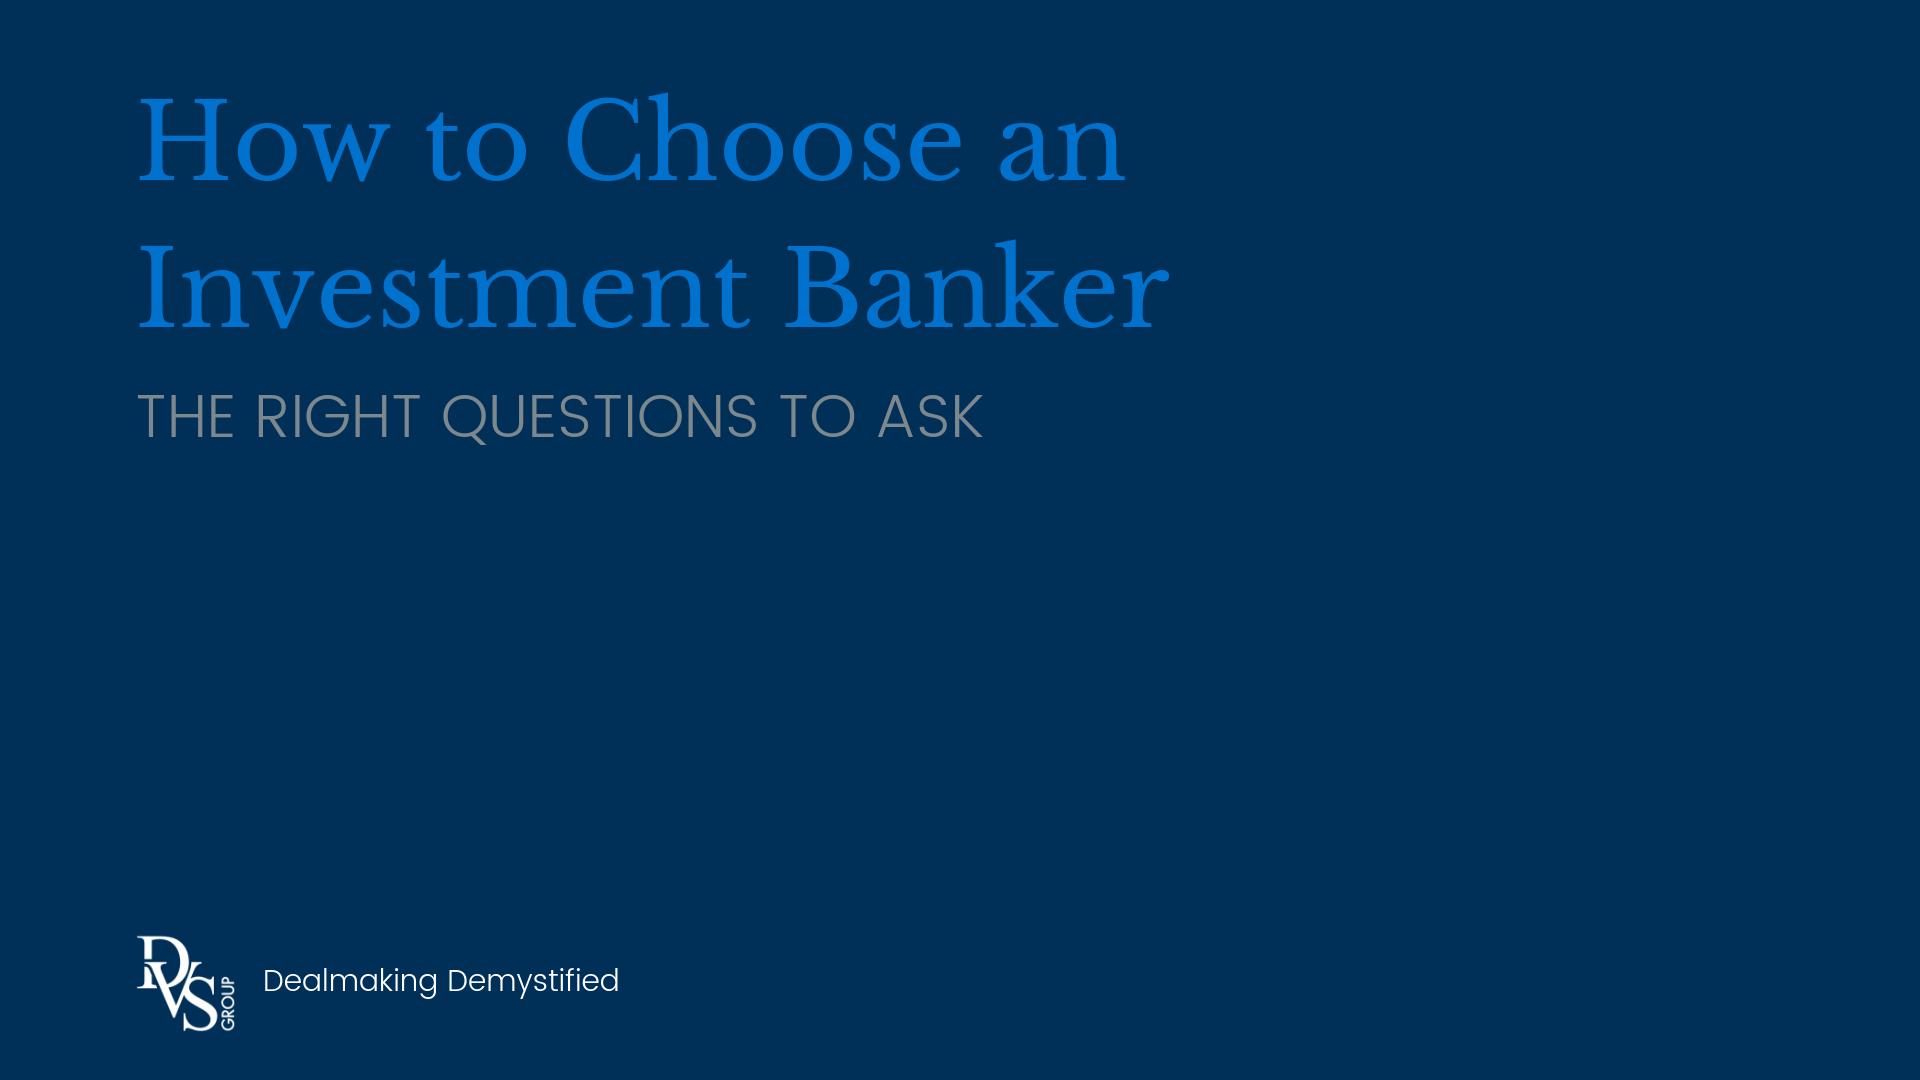 How to Choose an Investment Banker